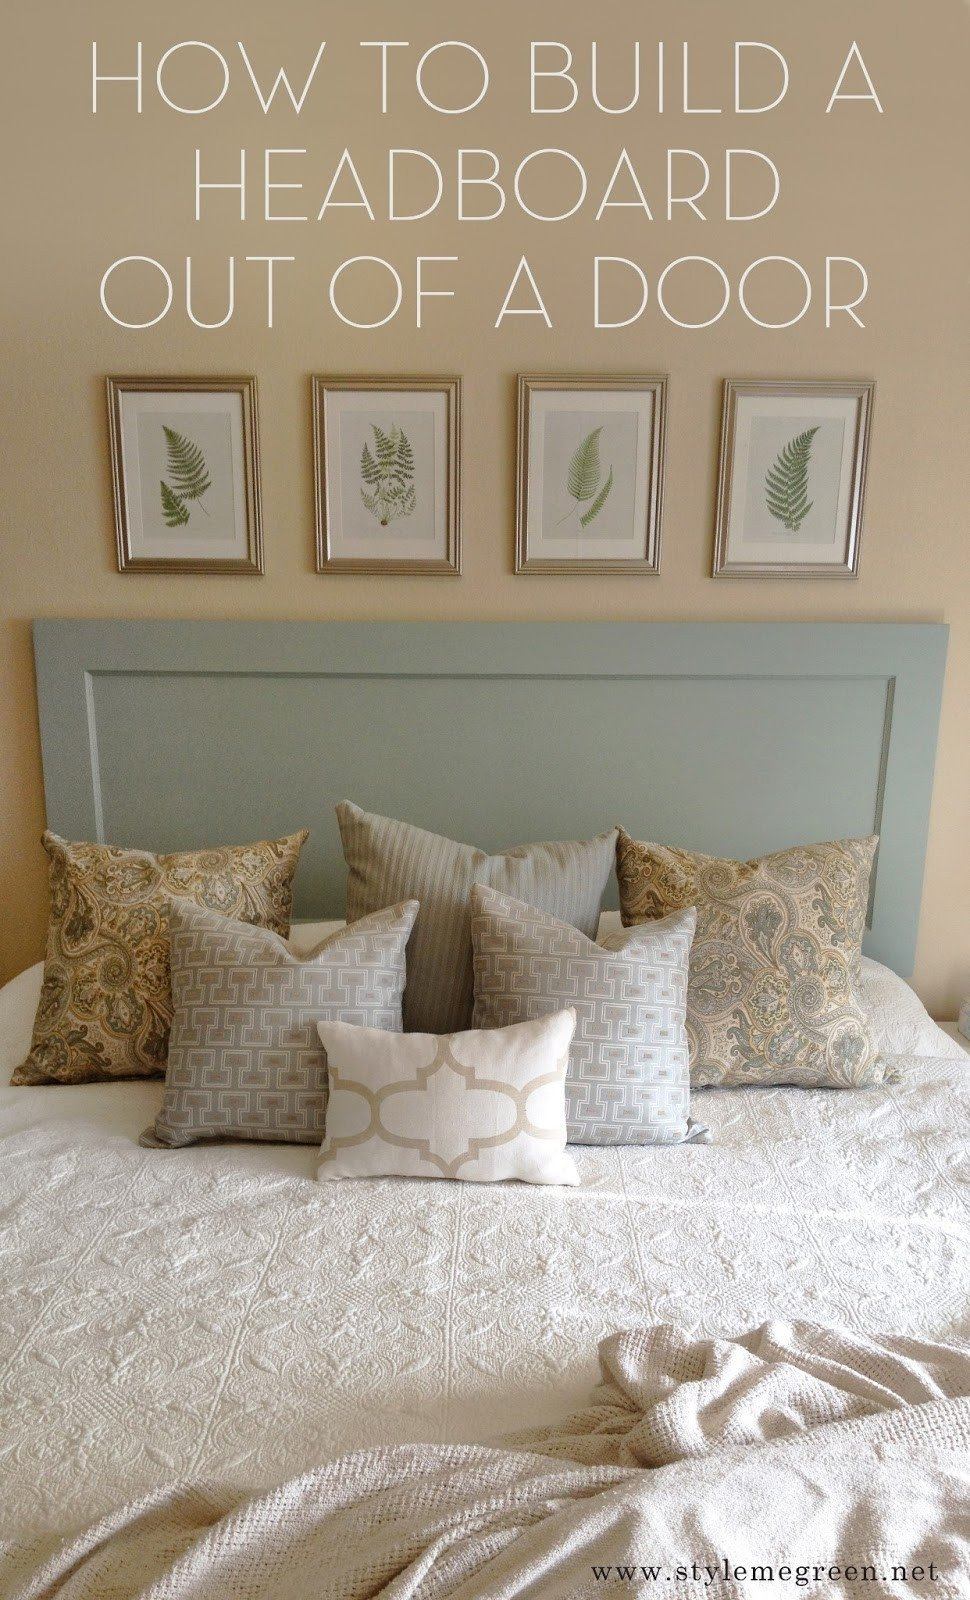 10 Amazing Ideas To Spice Up Your Bedroom how to make a headboard for bed astonishing 50 outstanding diy ideas 2020